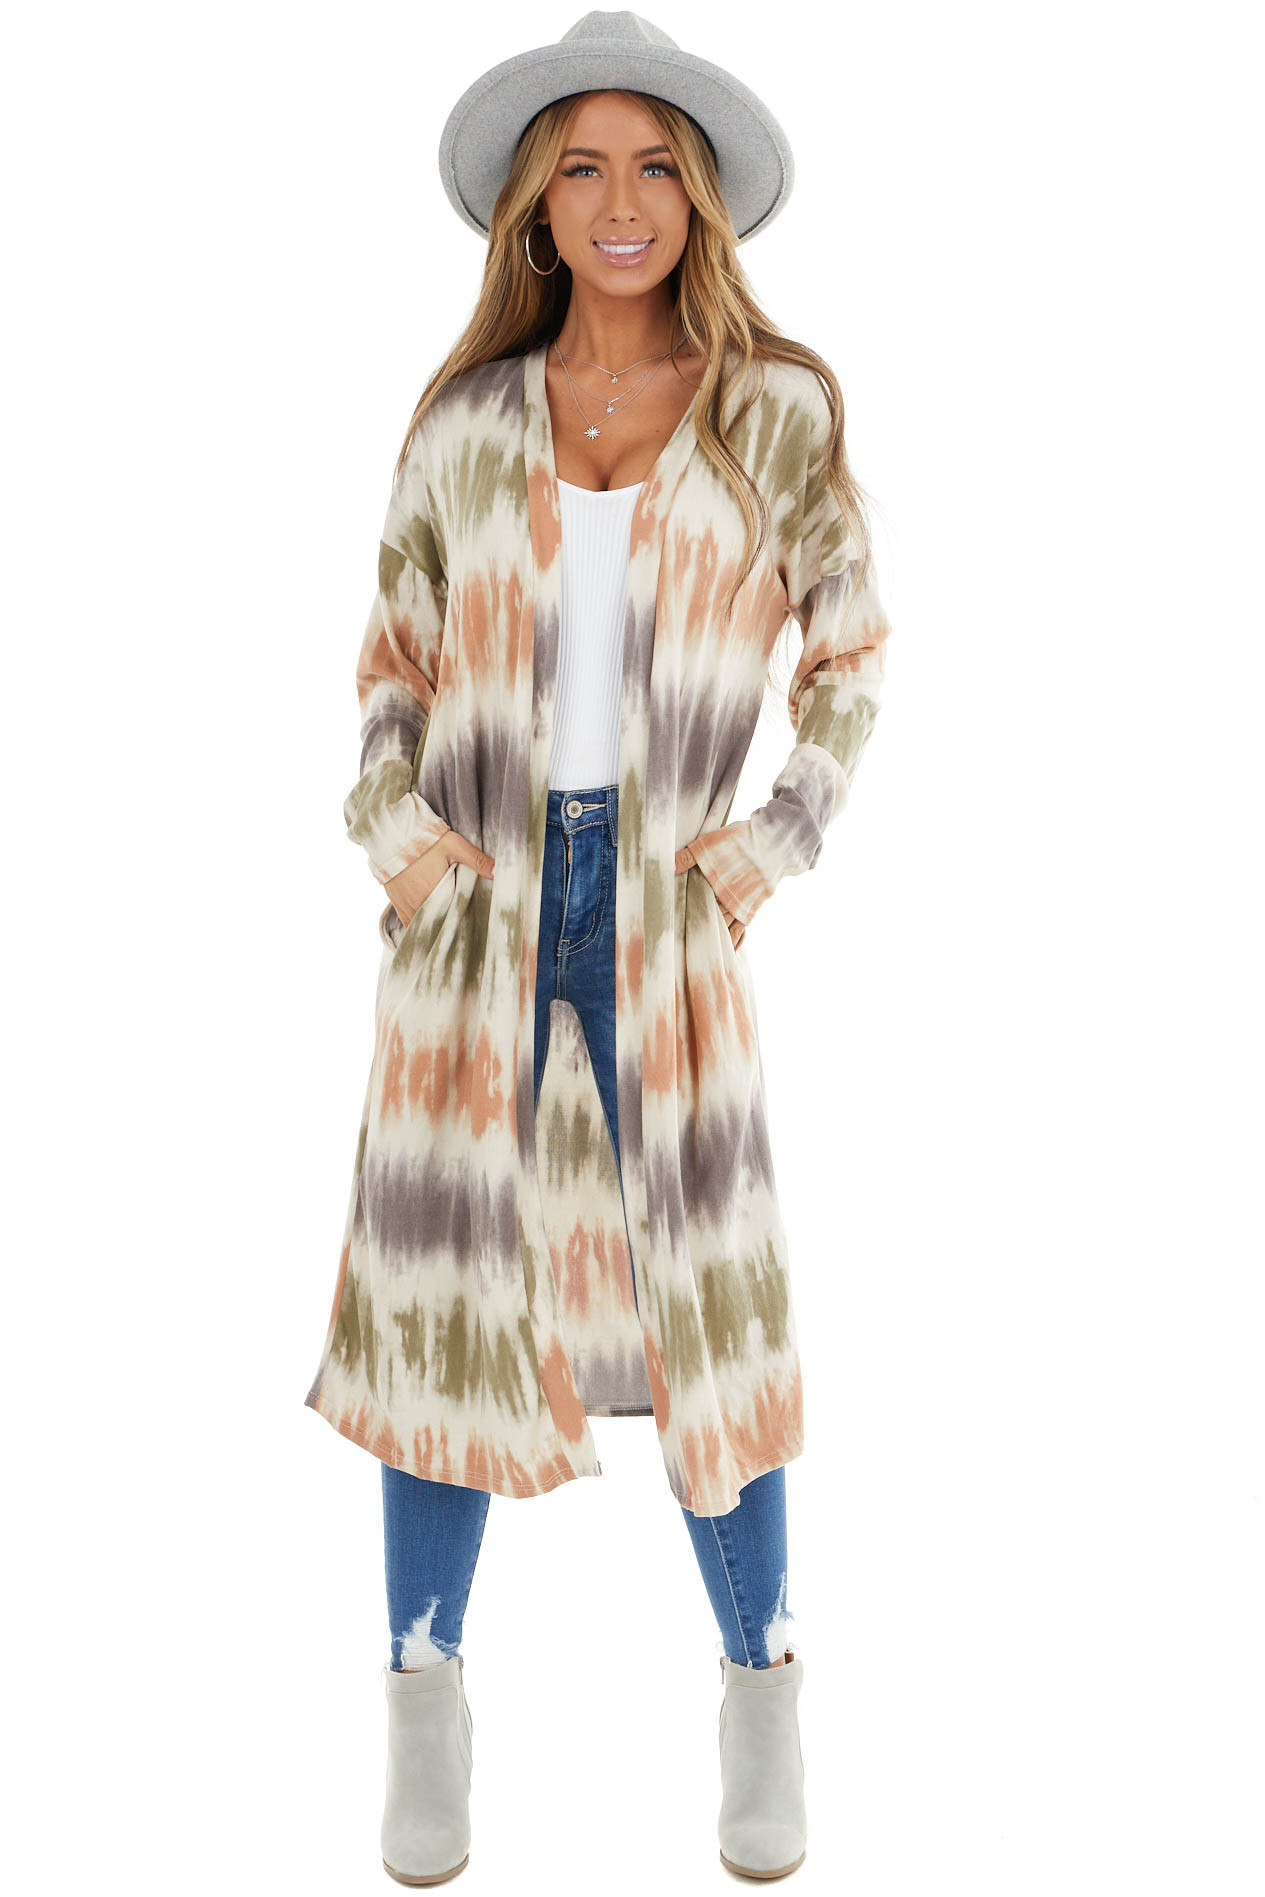 Cream Long Sleeve Cardigan with Pockets and Tie Dye Stripes